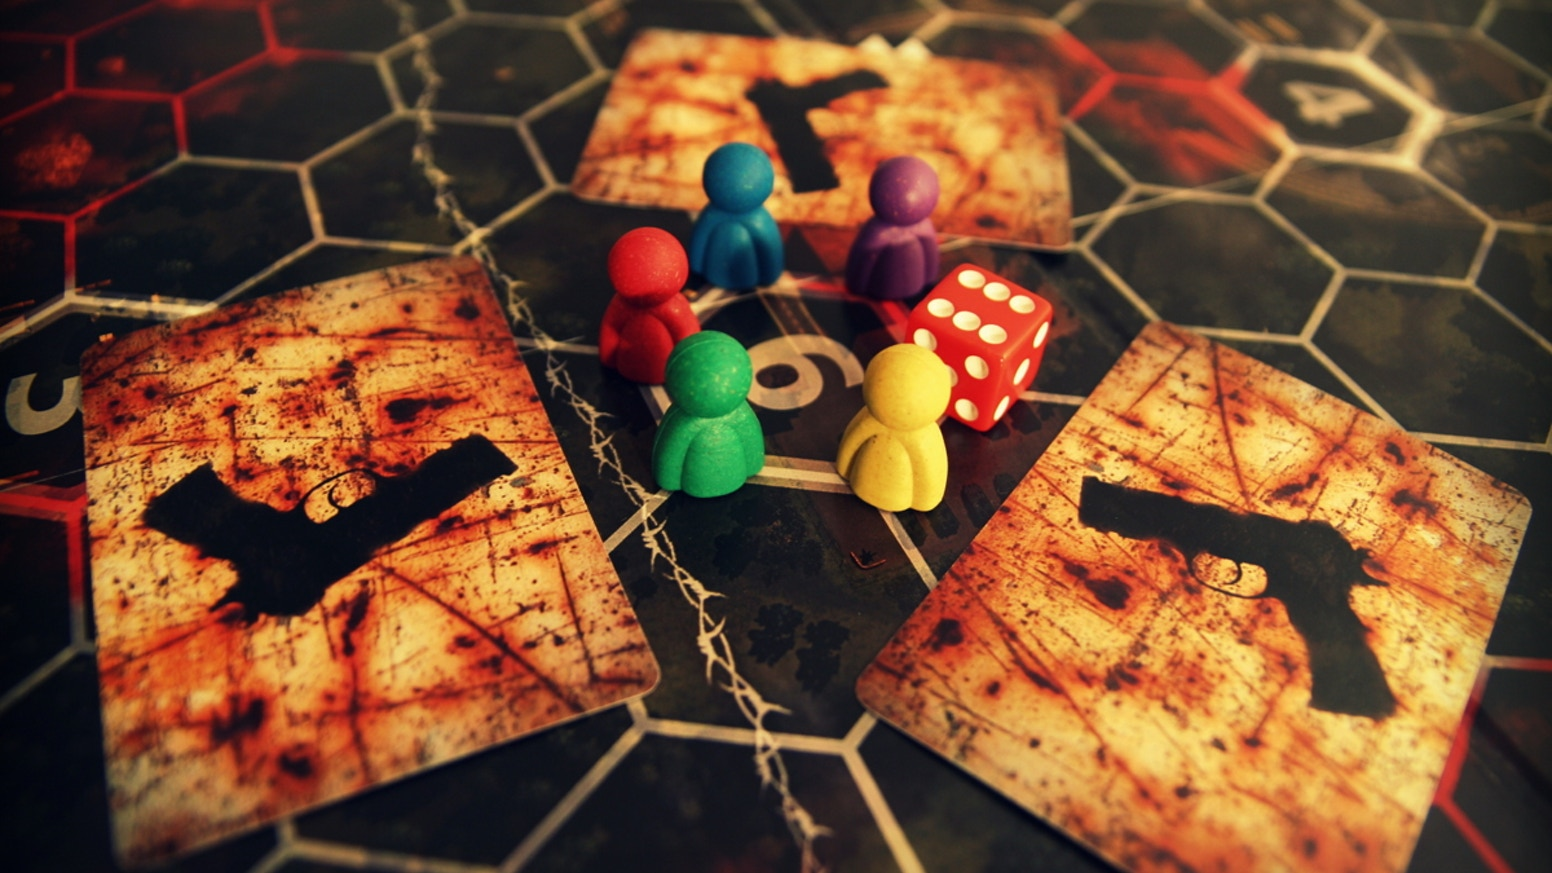 Collect artefacts, complete missions or hunt other players. A competitive board game that doesn't end if you die.